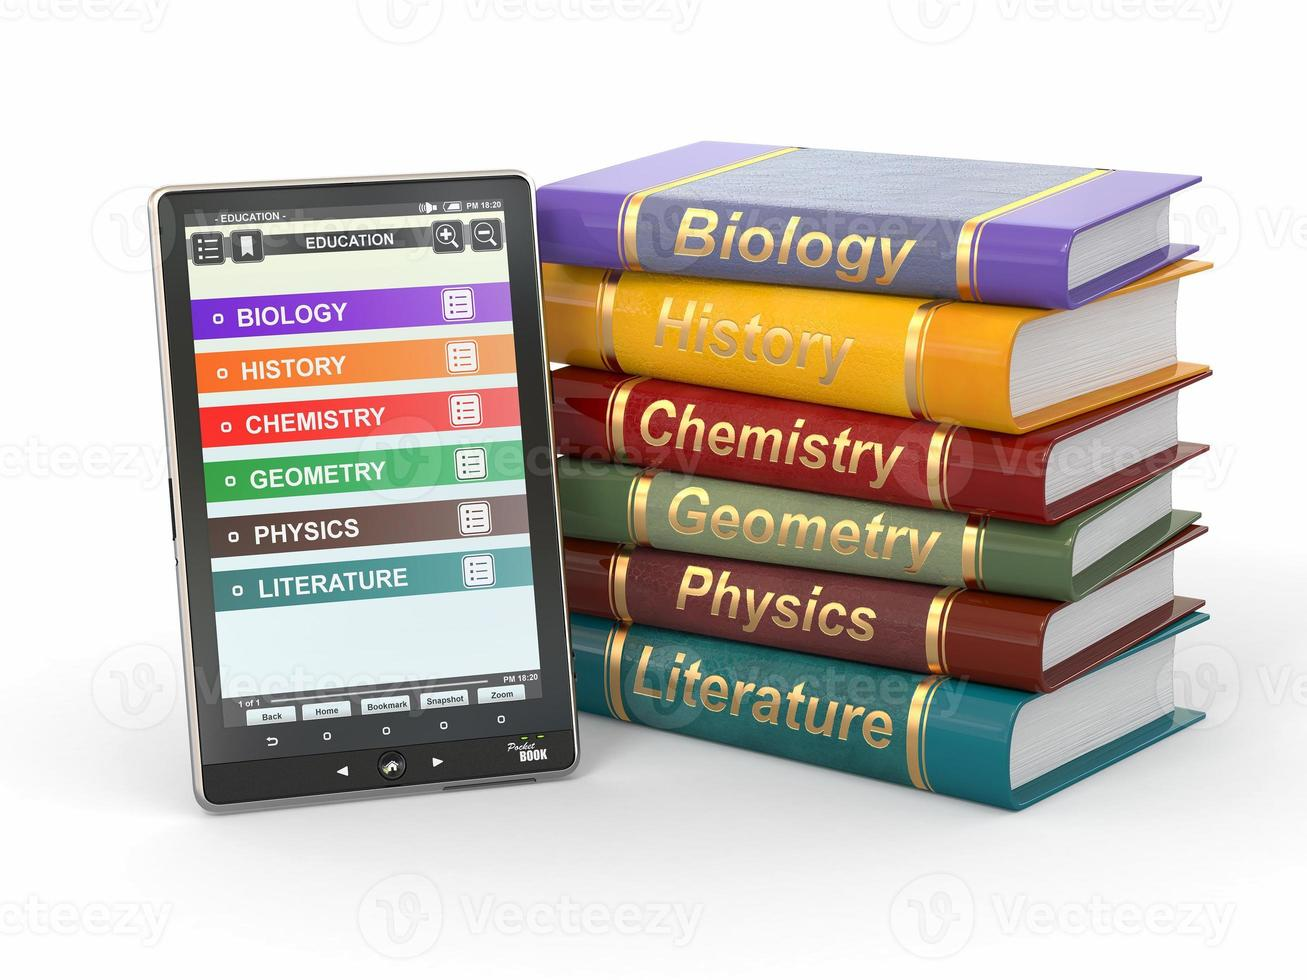 E-book reader. Textbooks and tablet pc photo